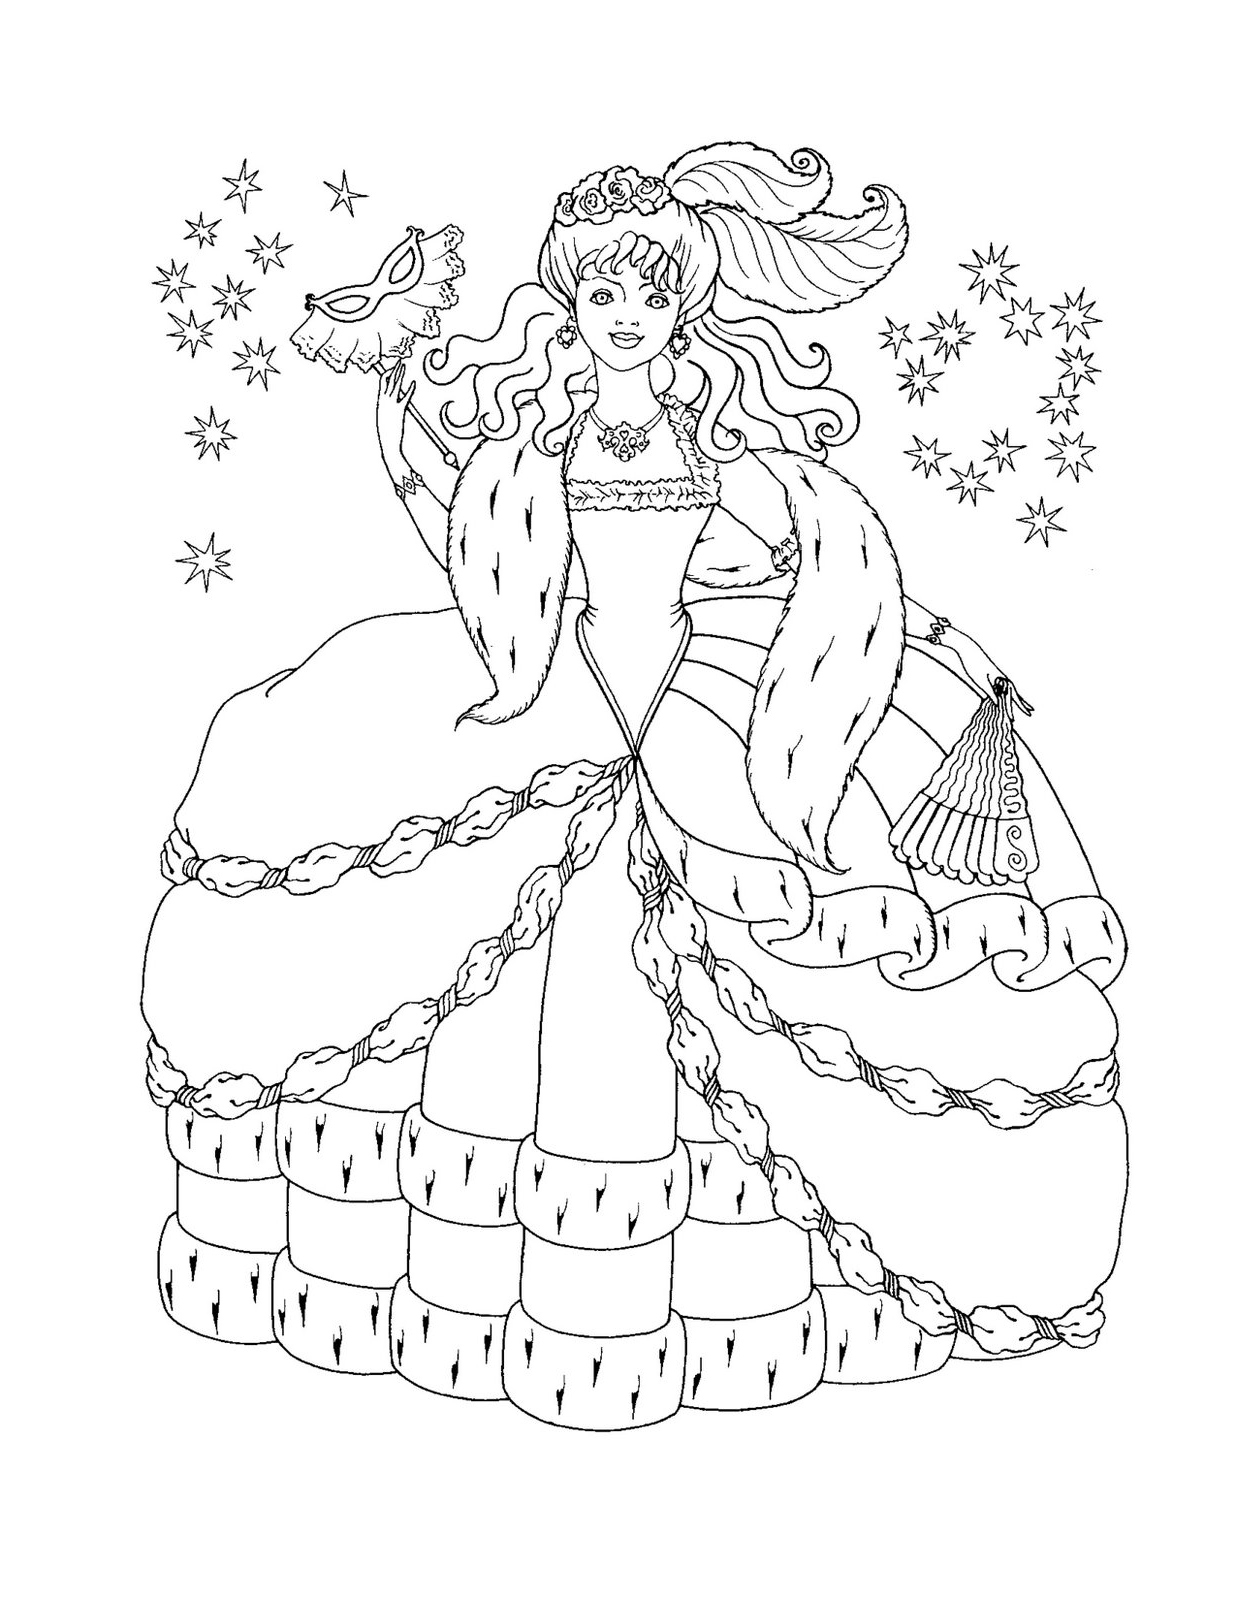 childrens disney coloring pages - photo#23